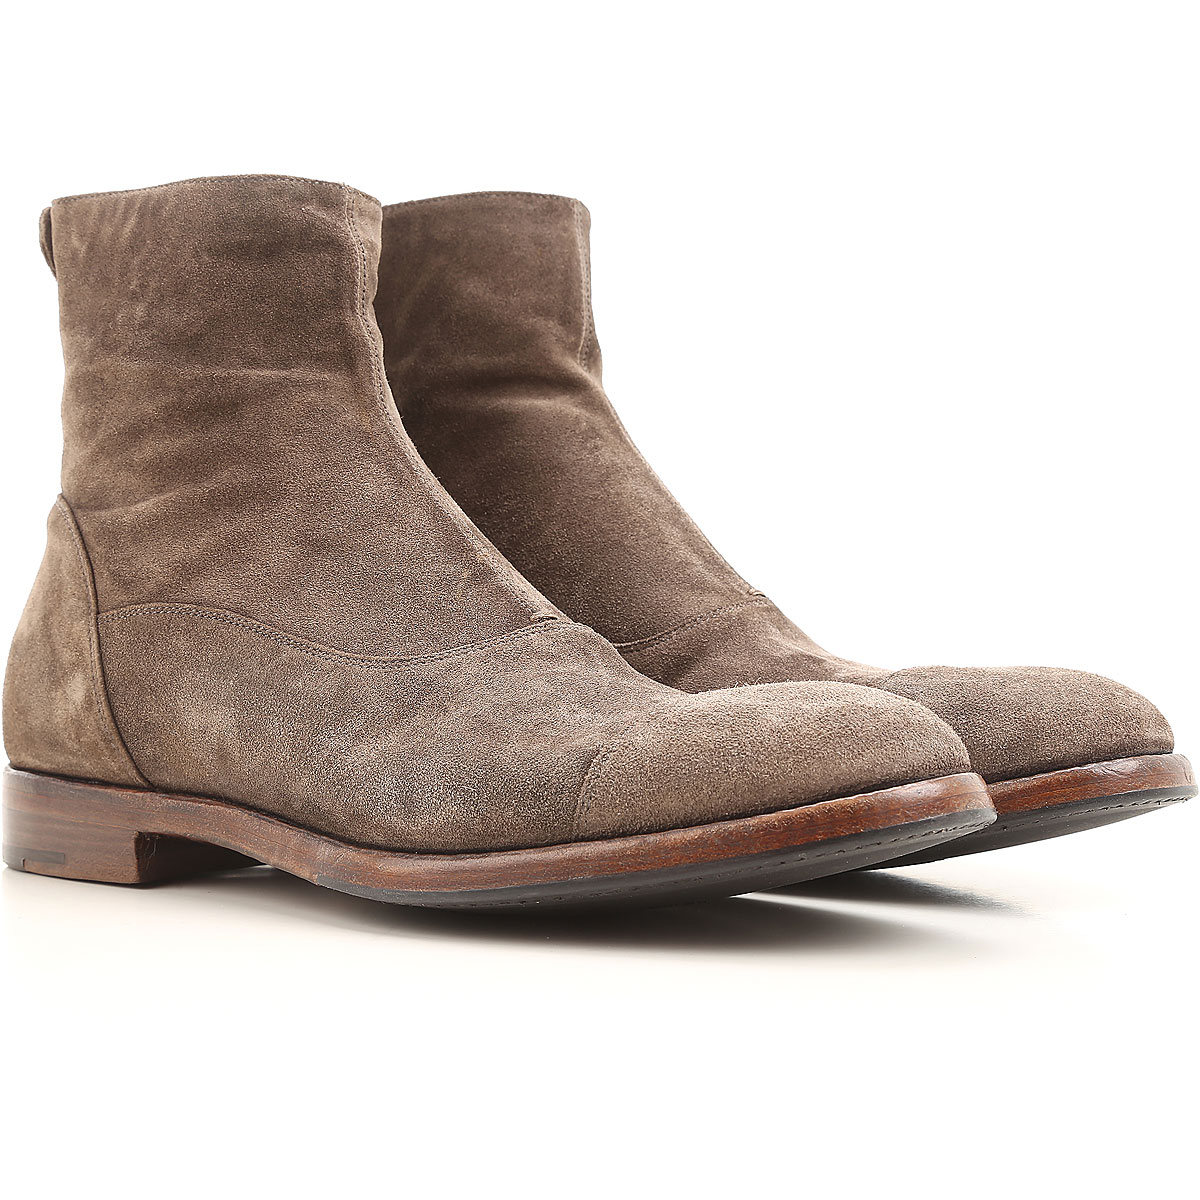 Image of Alberto Fasciani Boots for Women, Booties On Sale in Outlet, Mouse Grey, Suede leather, 2017, 10.5 11